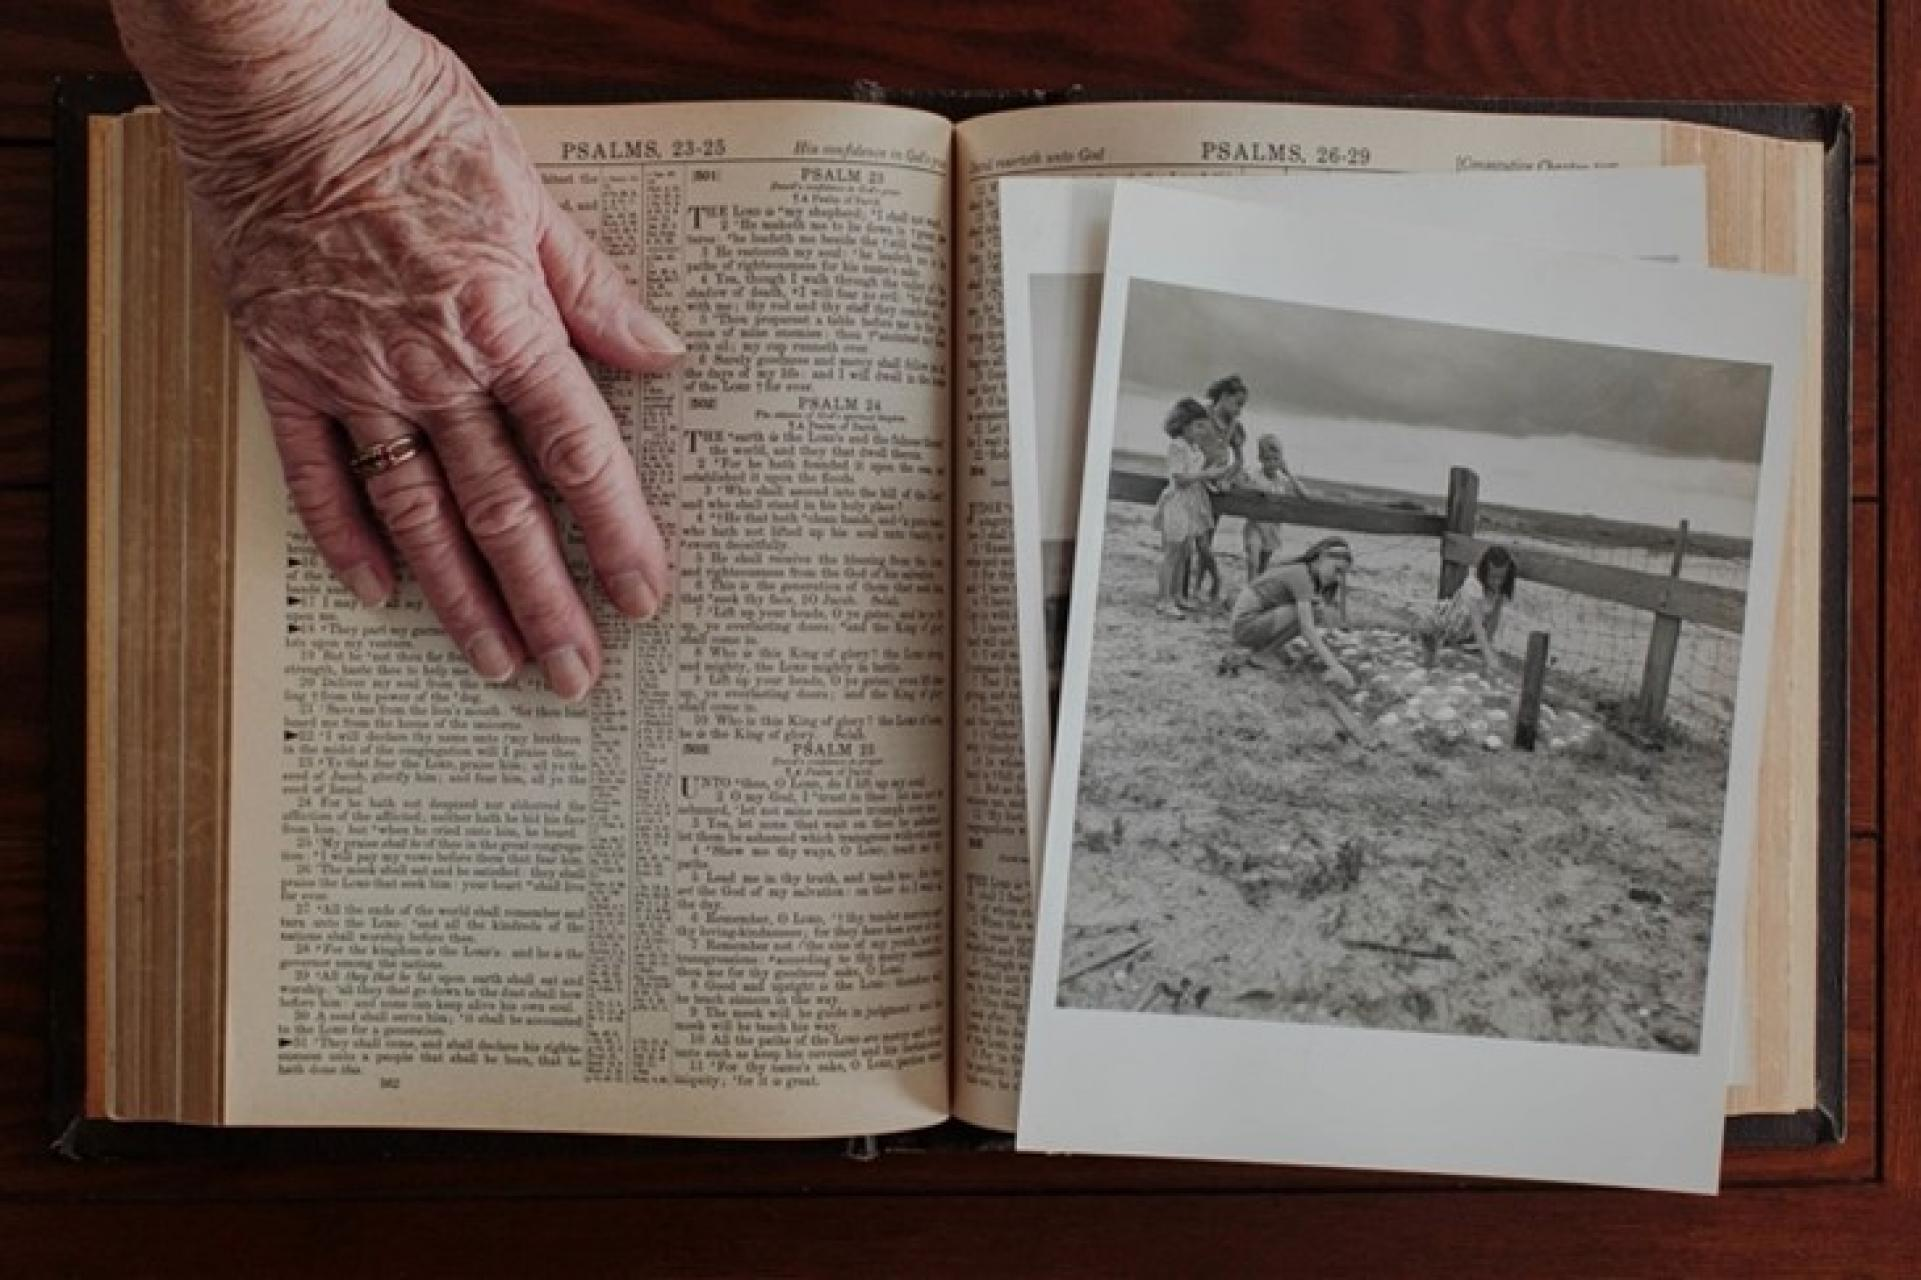 Jean Hooper's hand rests on top of the family bible, next to an archival image of her playing in the community cemetery as a child.